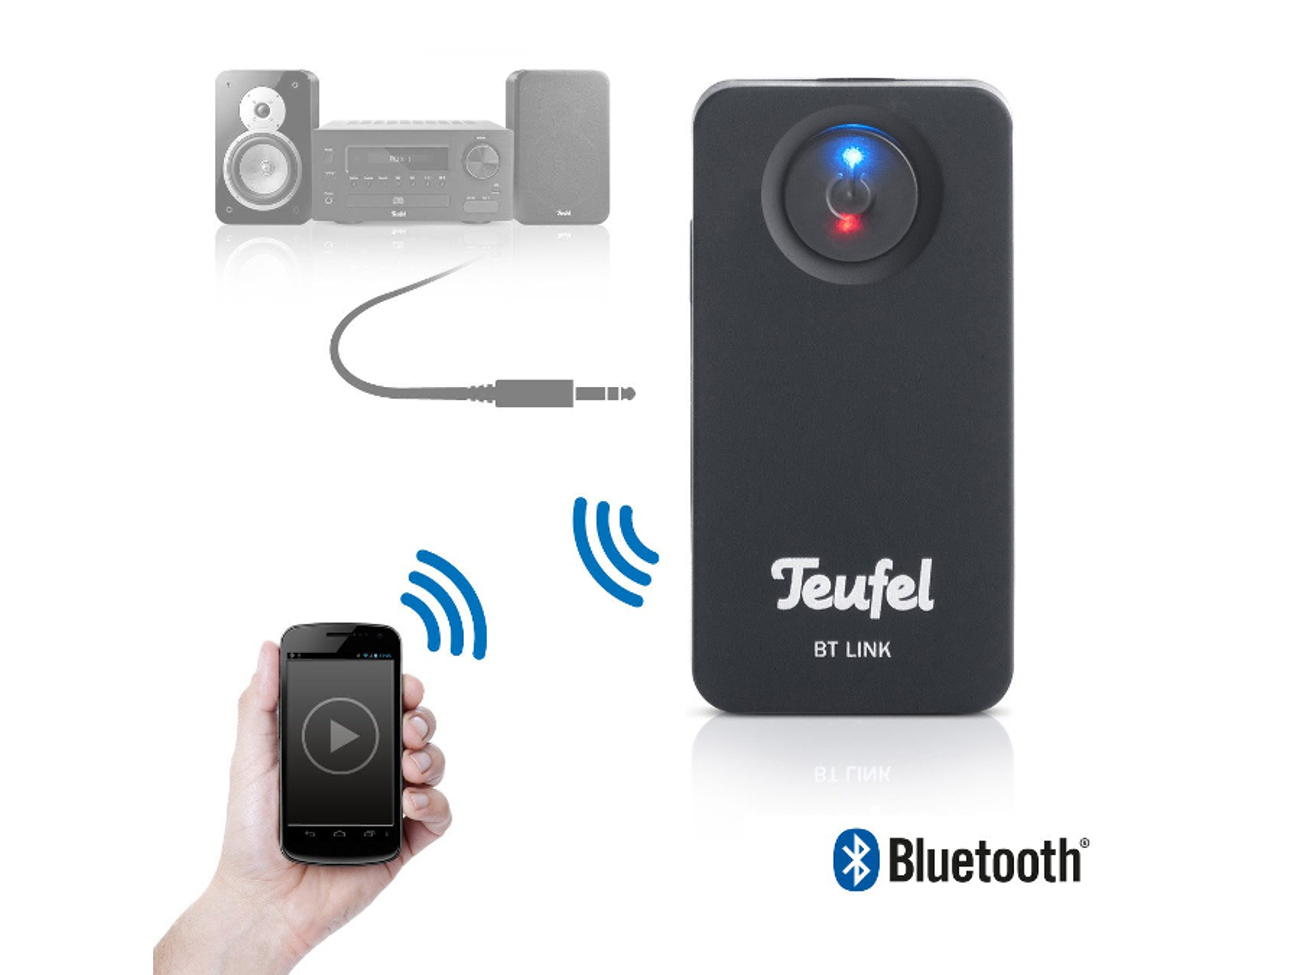 Teufel BT LINK - Bluetooth for any device